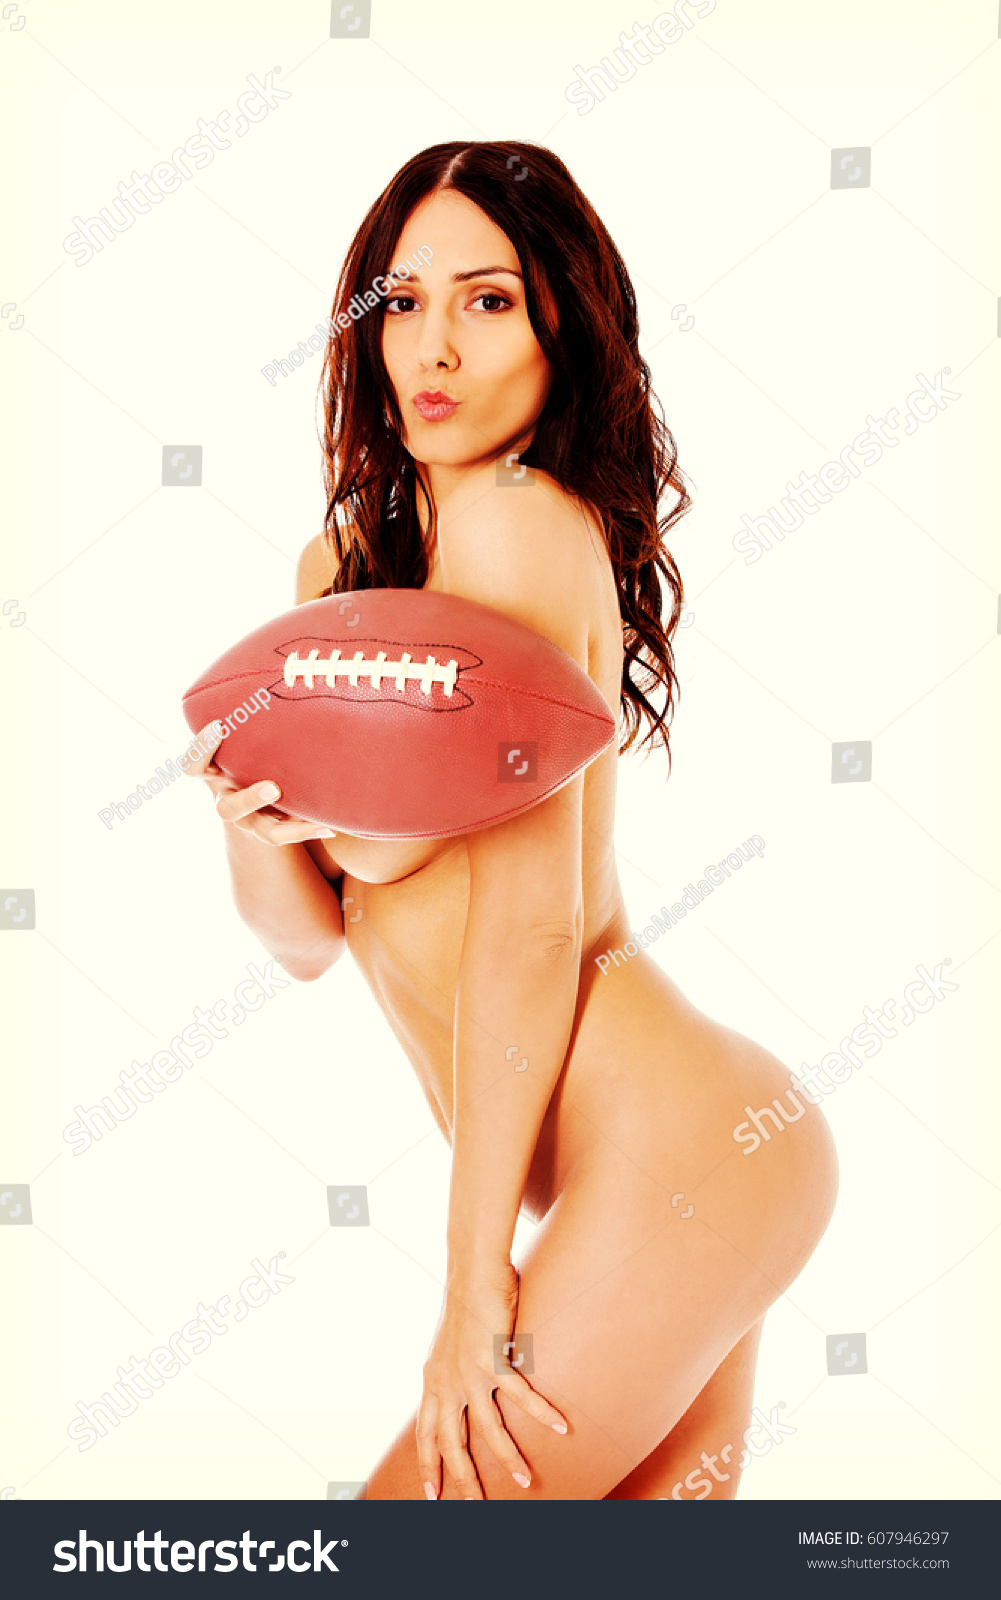 American Football Nude beautiful nude woman holding american football stock photo (edit now